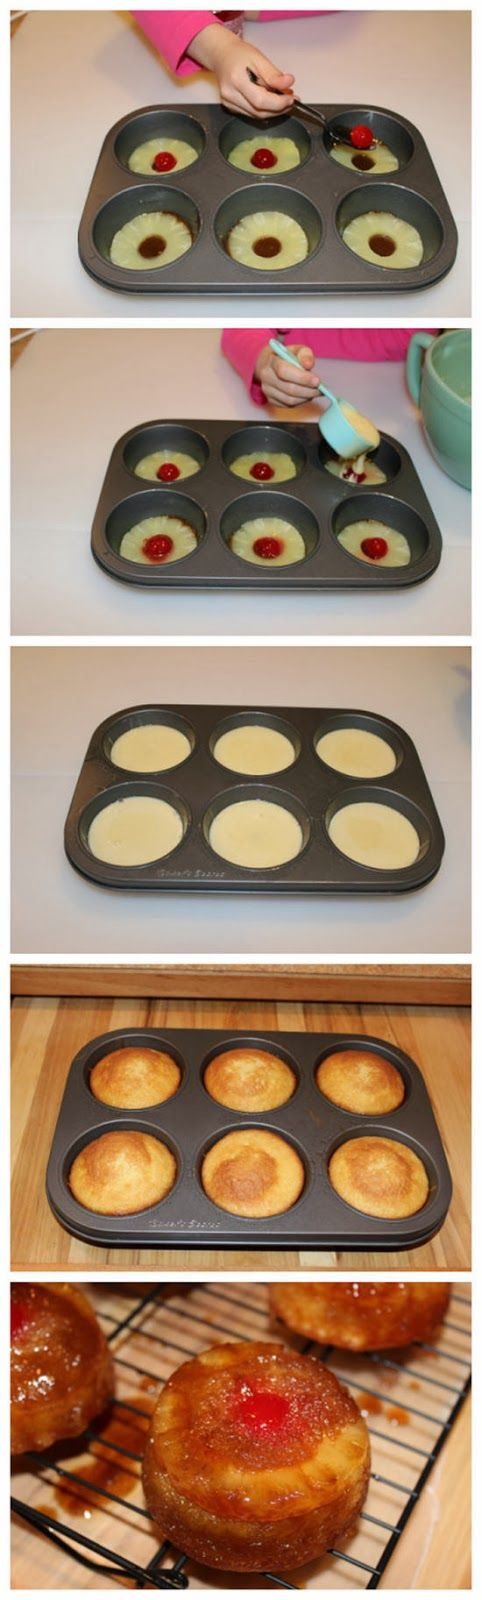 Muffin Tin Pineapple Upside Down Cake Recipes - great for individual party treats!